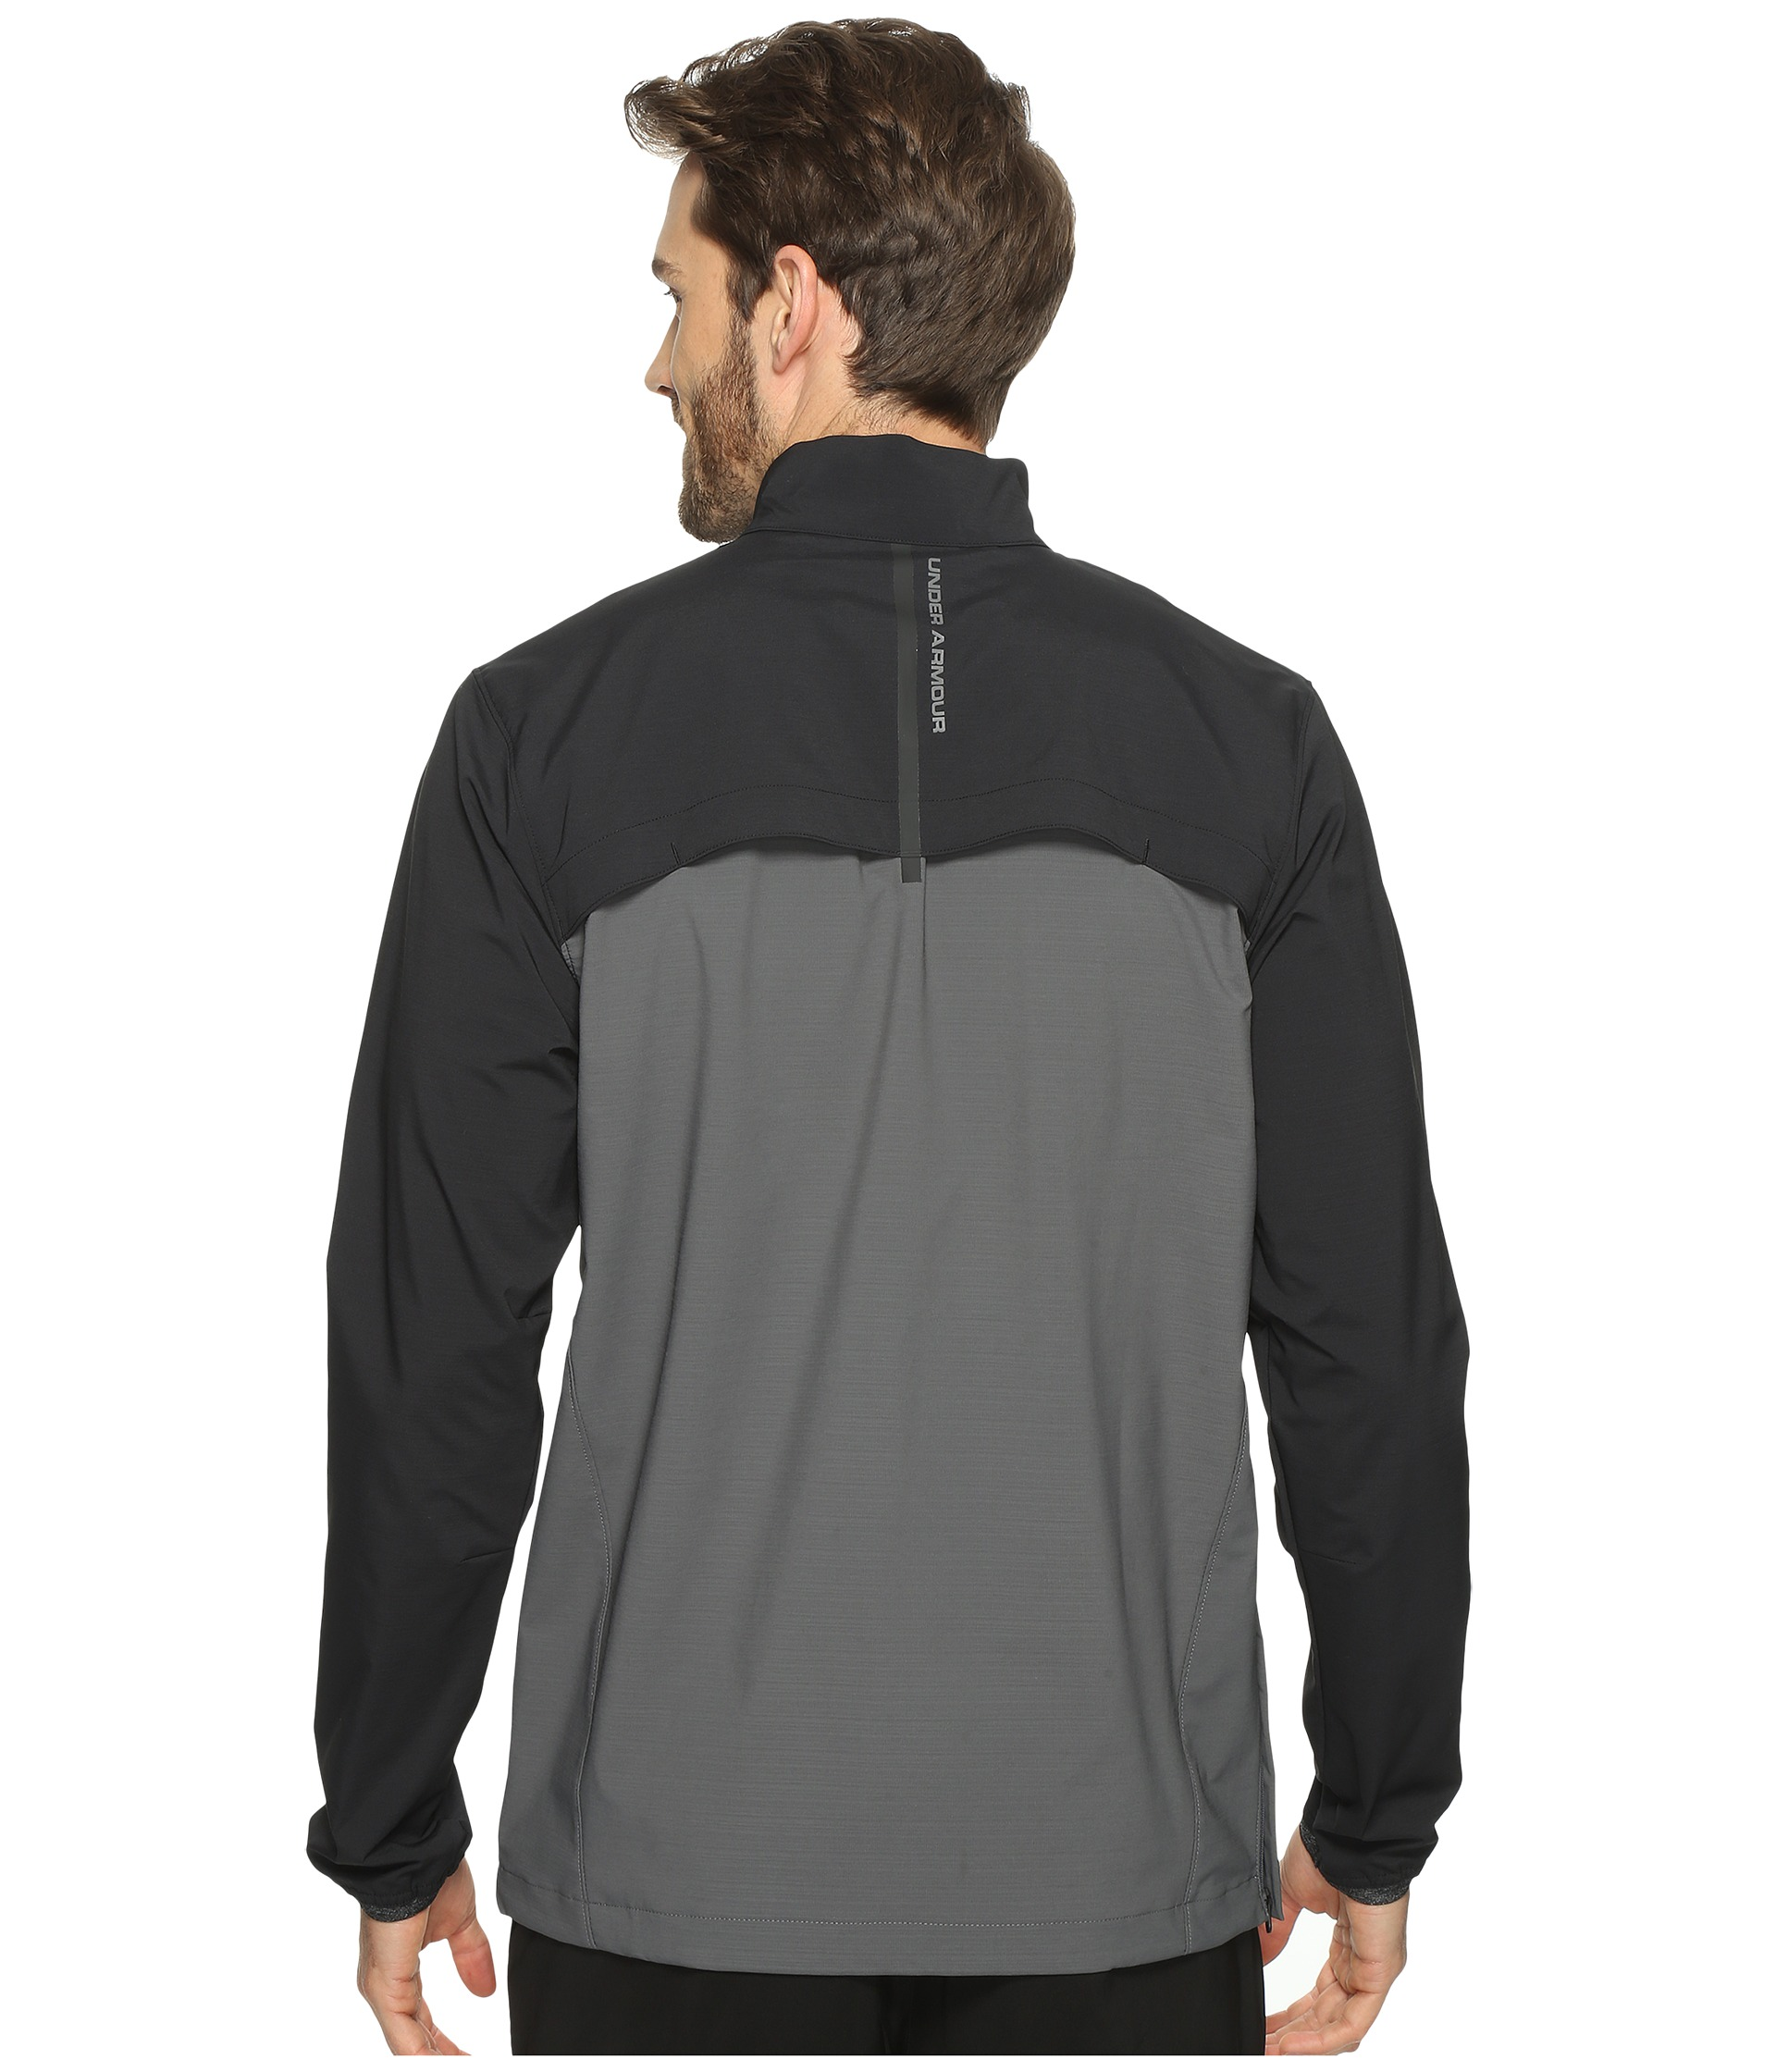 f587f83a1 under armour half zip jacket cheap > OFF40% The Largest Catalog ...